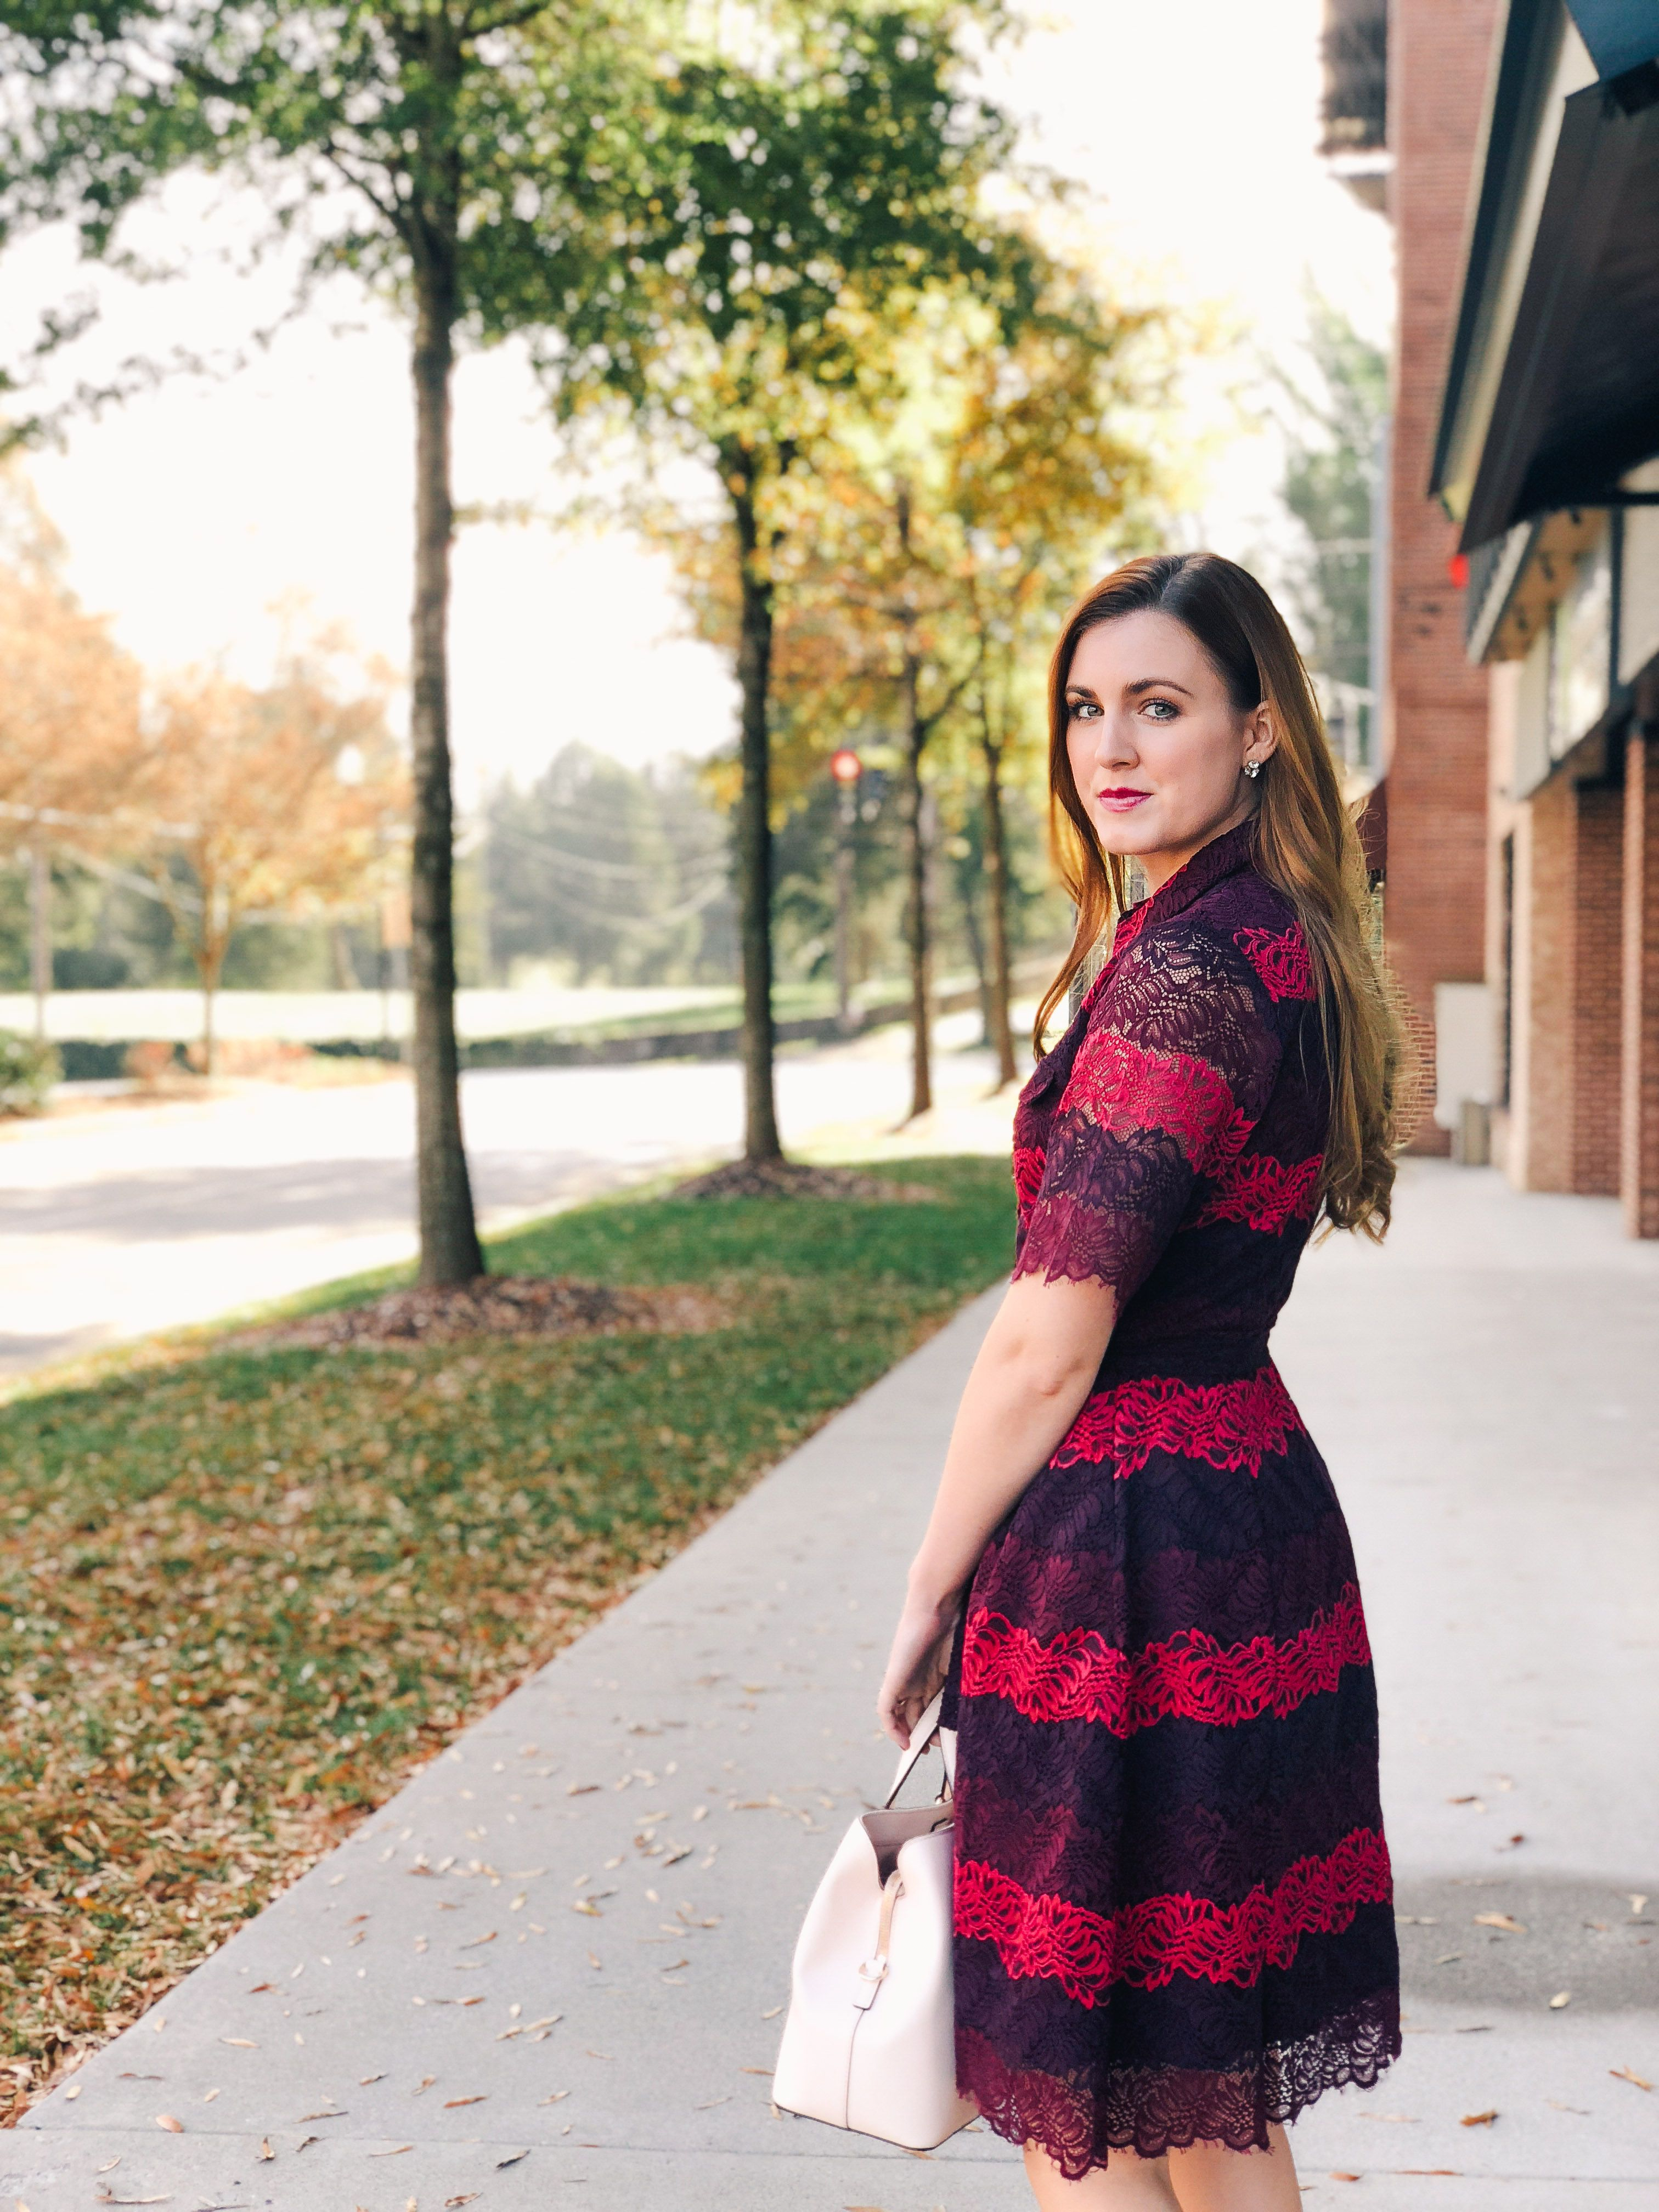 Office Holiday Party Dress: Business Casual | Office holiday party ...